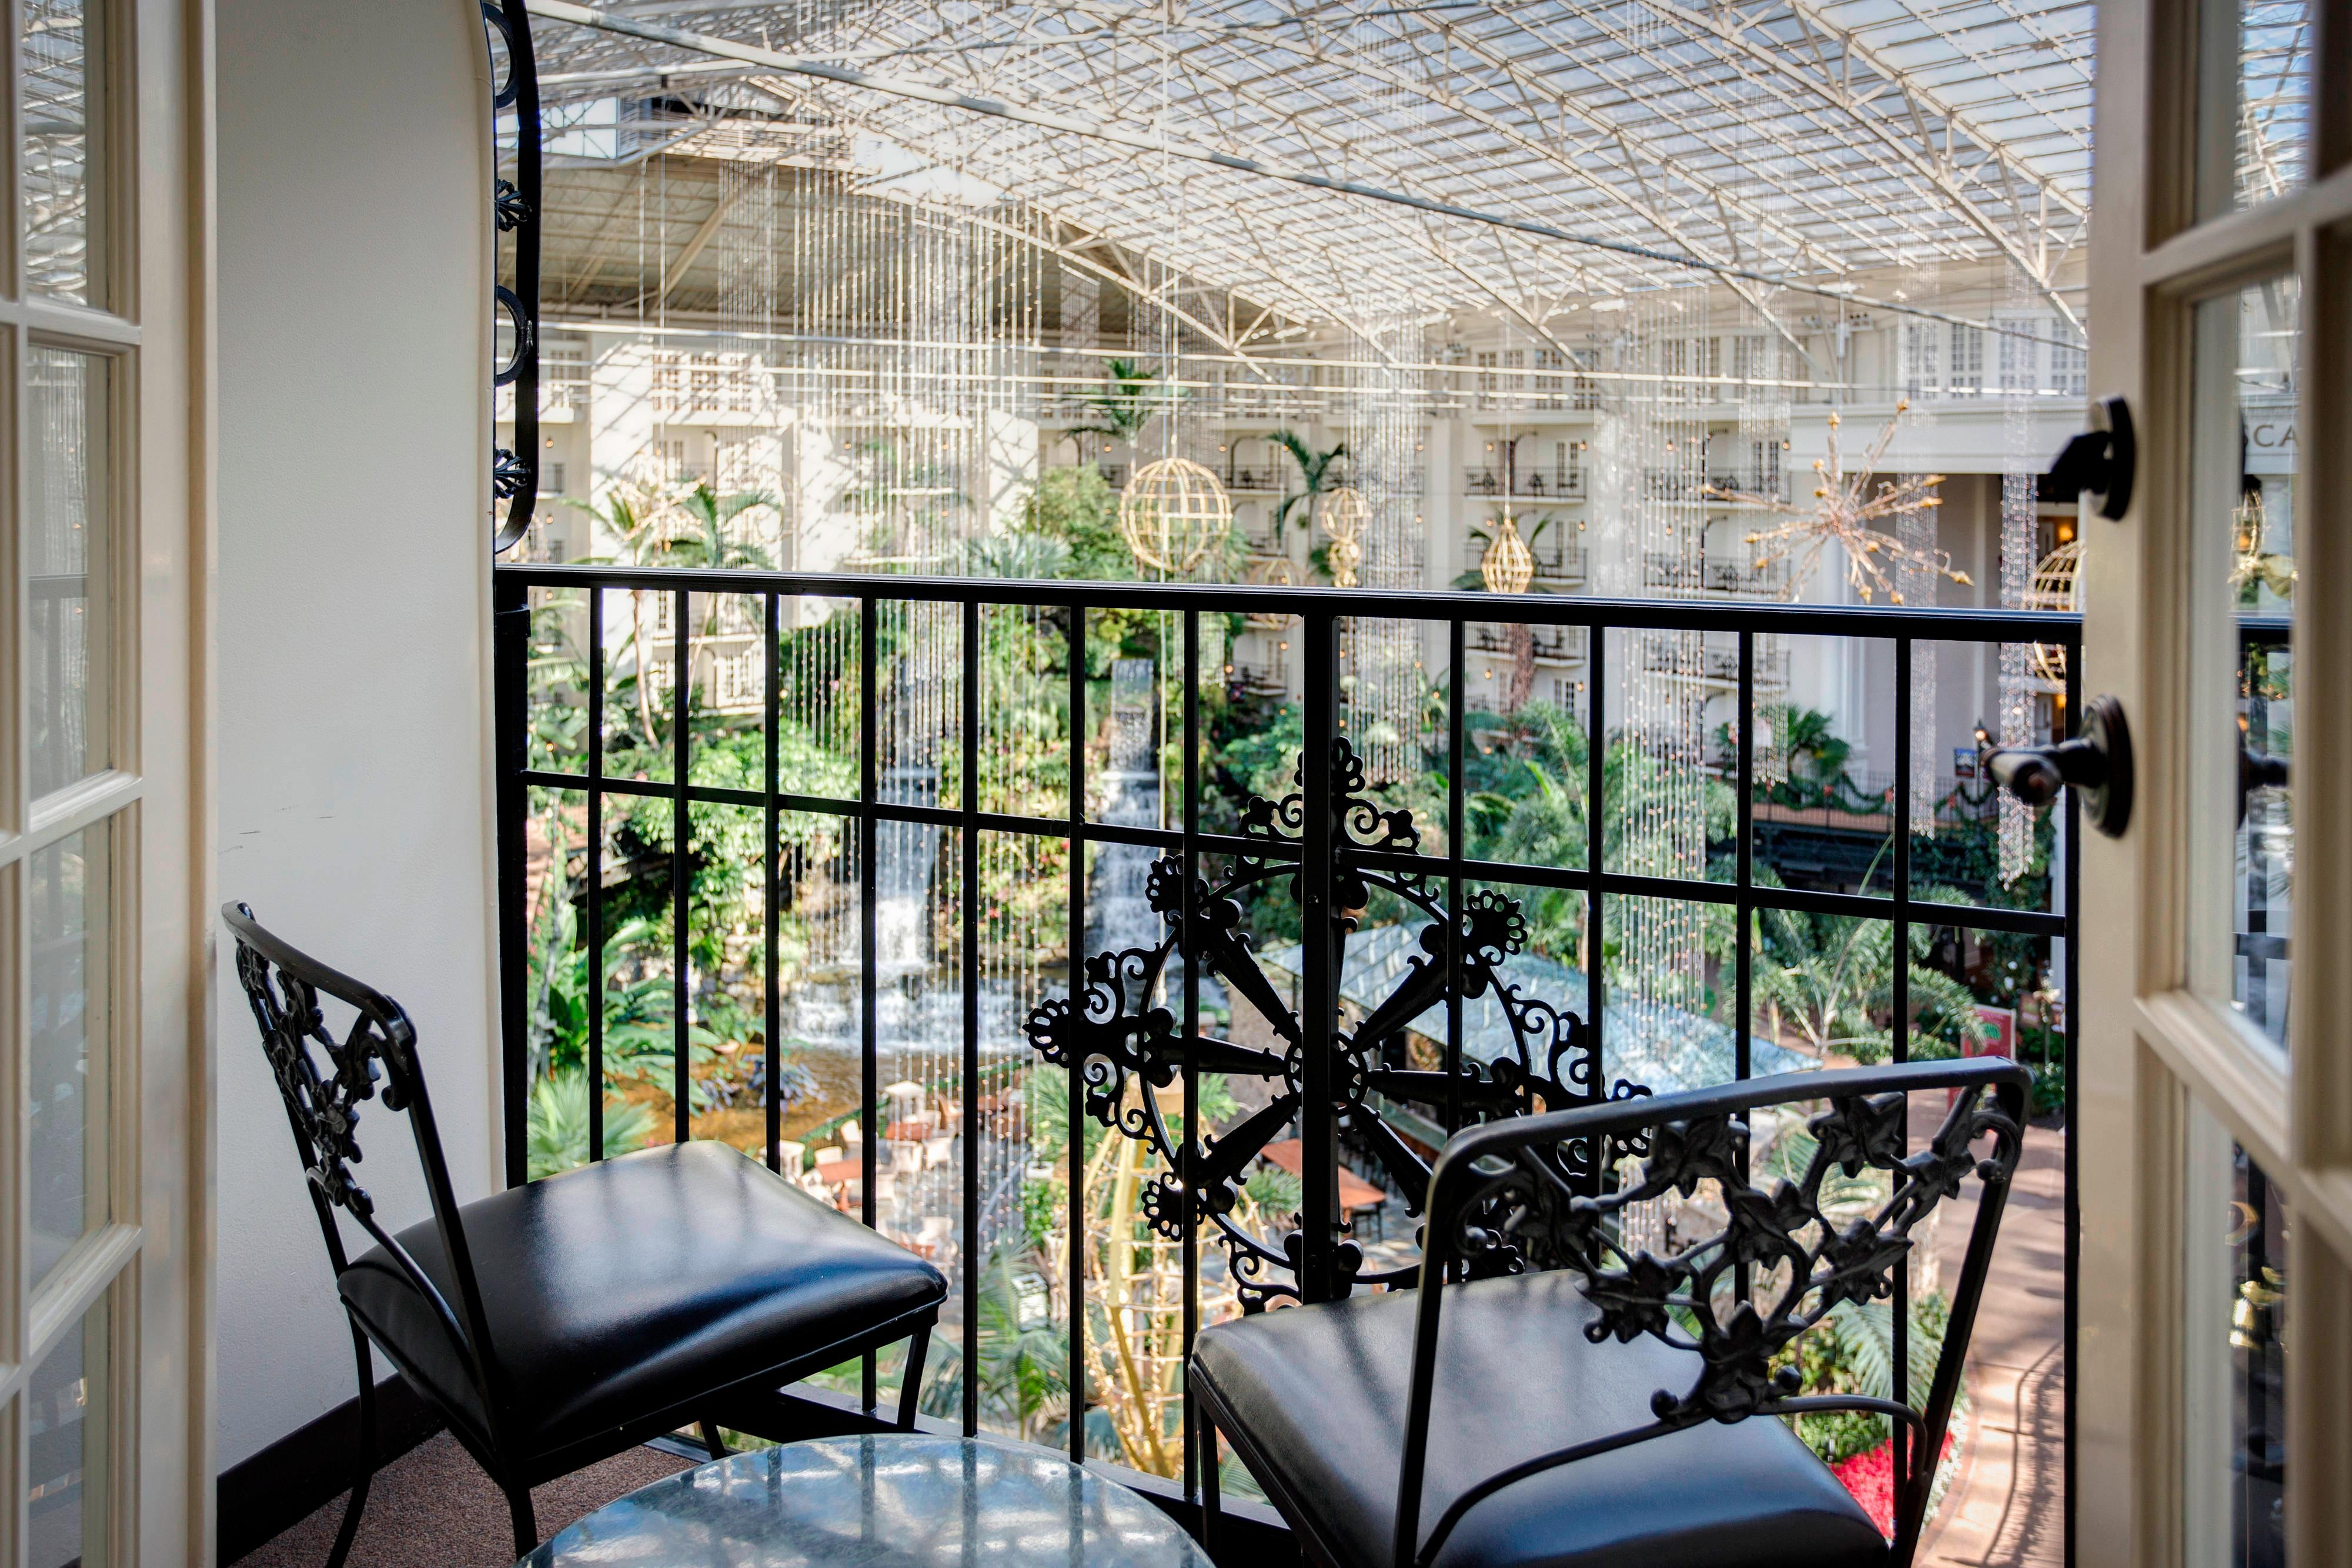 Nashville – Gaylord Opryland Atrium View Room